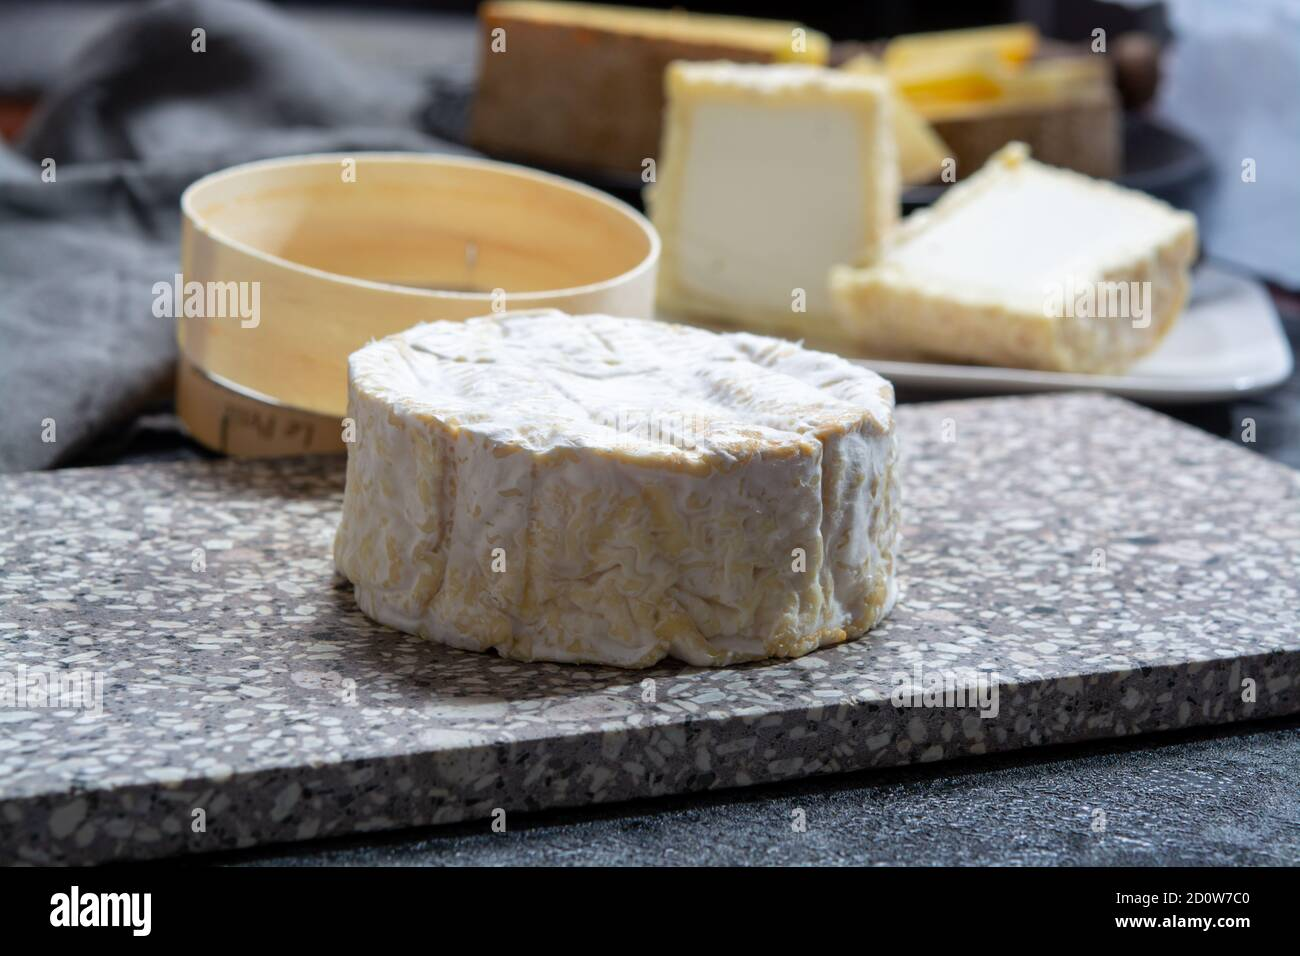 Cheese Collection French Soft Camembert Of Normandy Cheese Made From Cow Milk In Region Normandy France Close Up Stock Photo Alamy